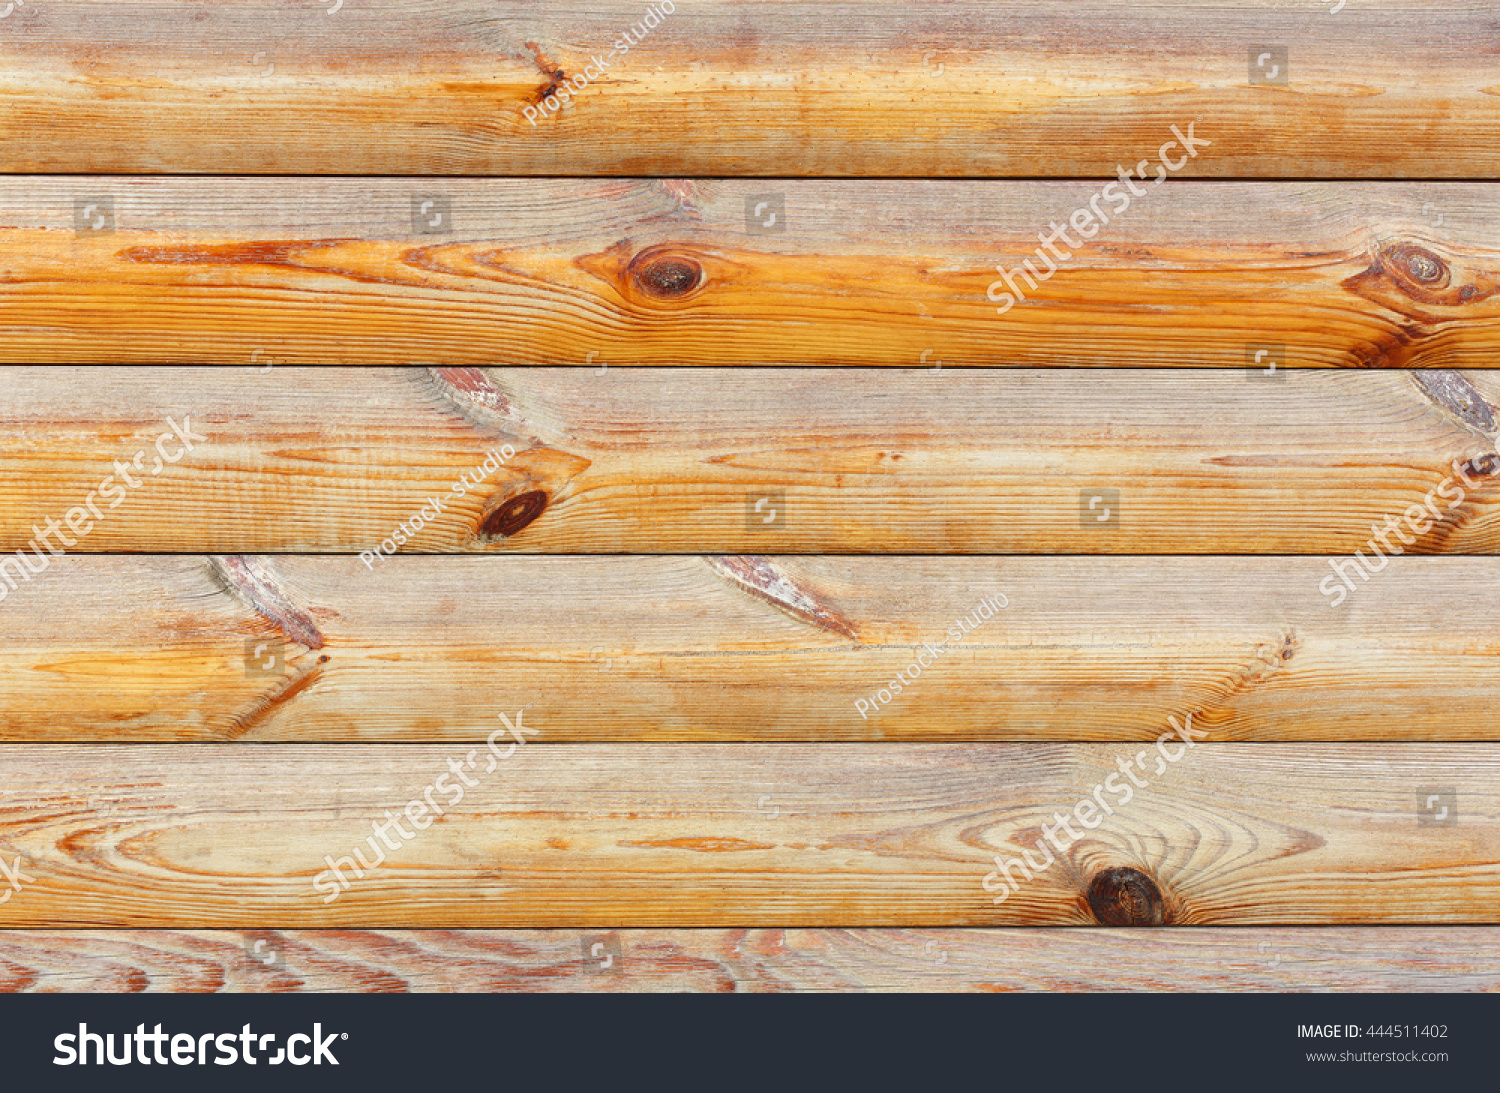 Wood planks kiln dried wooden lumber texture background unpainted unfinished pine furniture surface